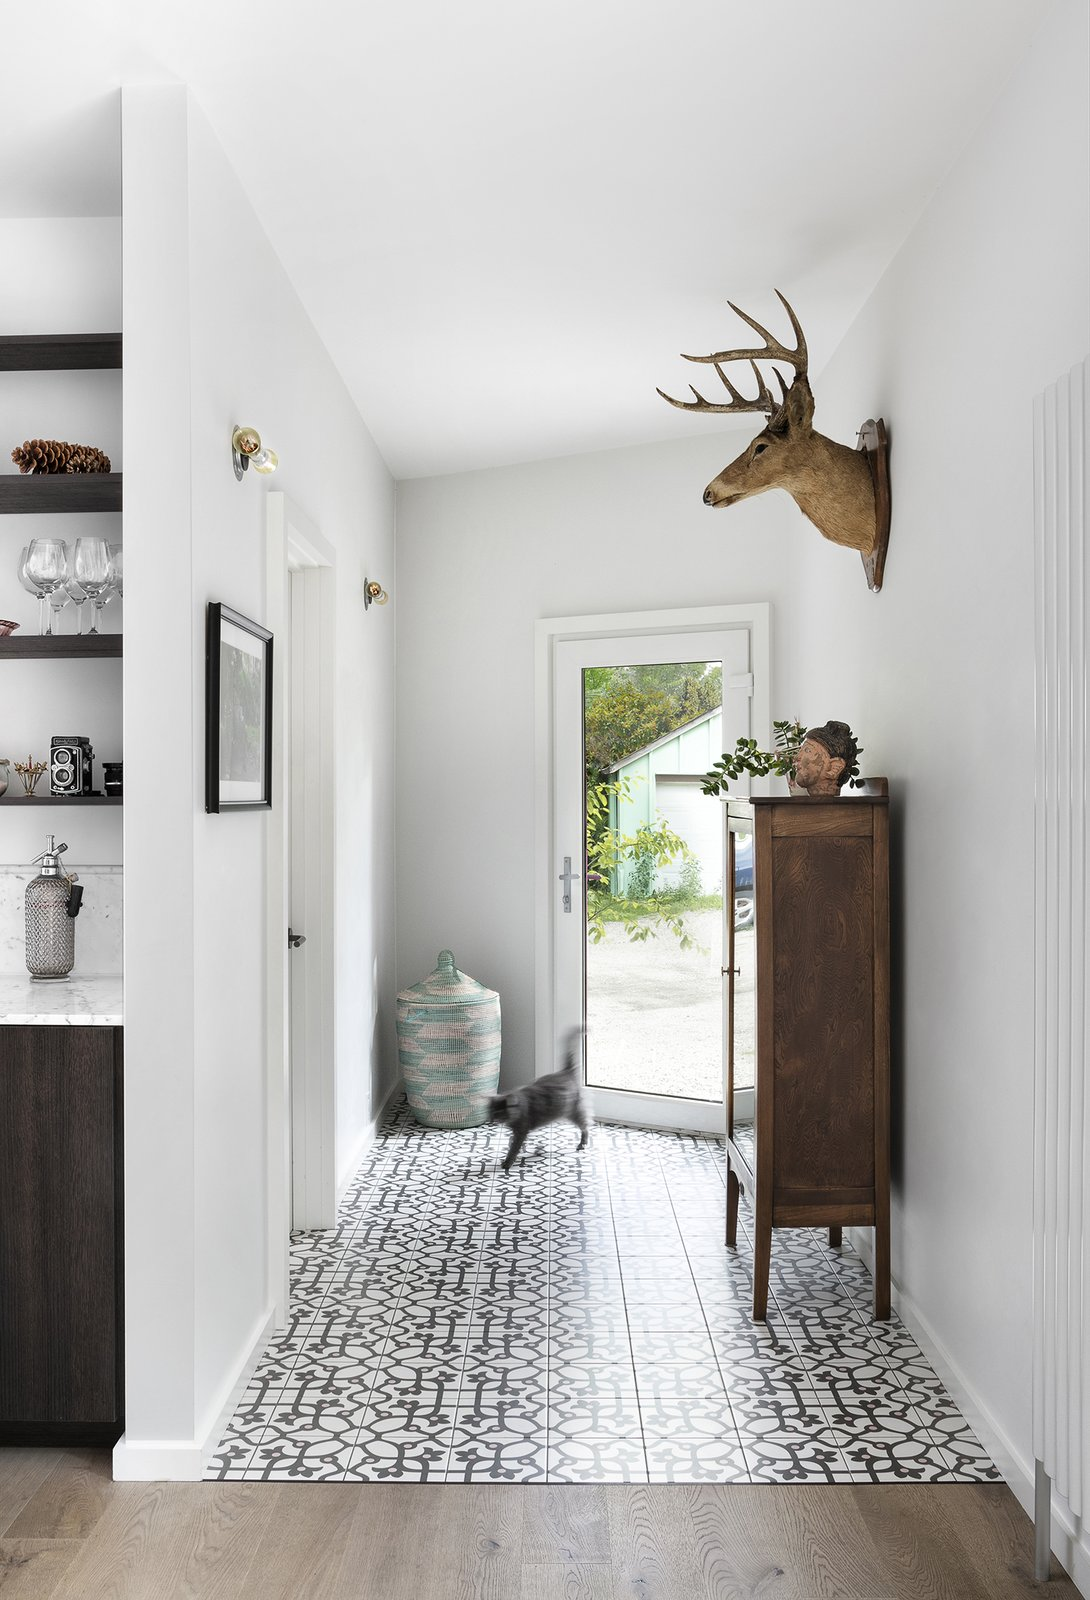 Jujol Basalto porcelain tiles, sourced from Mettro Source, line the floor just inside the front entry.